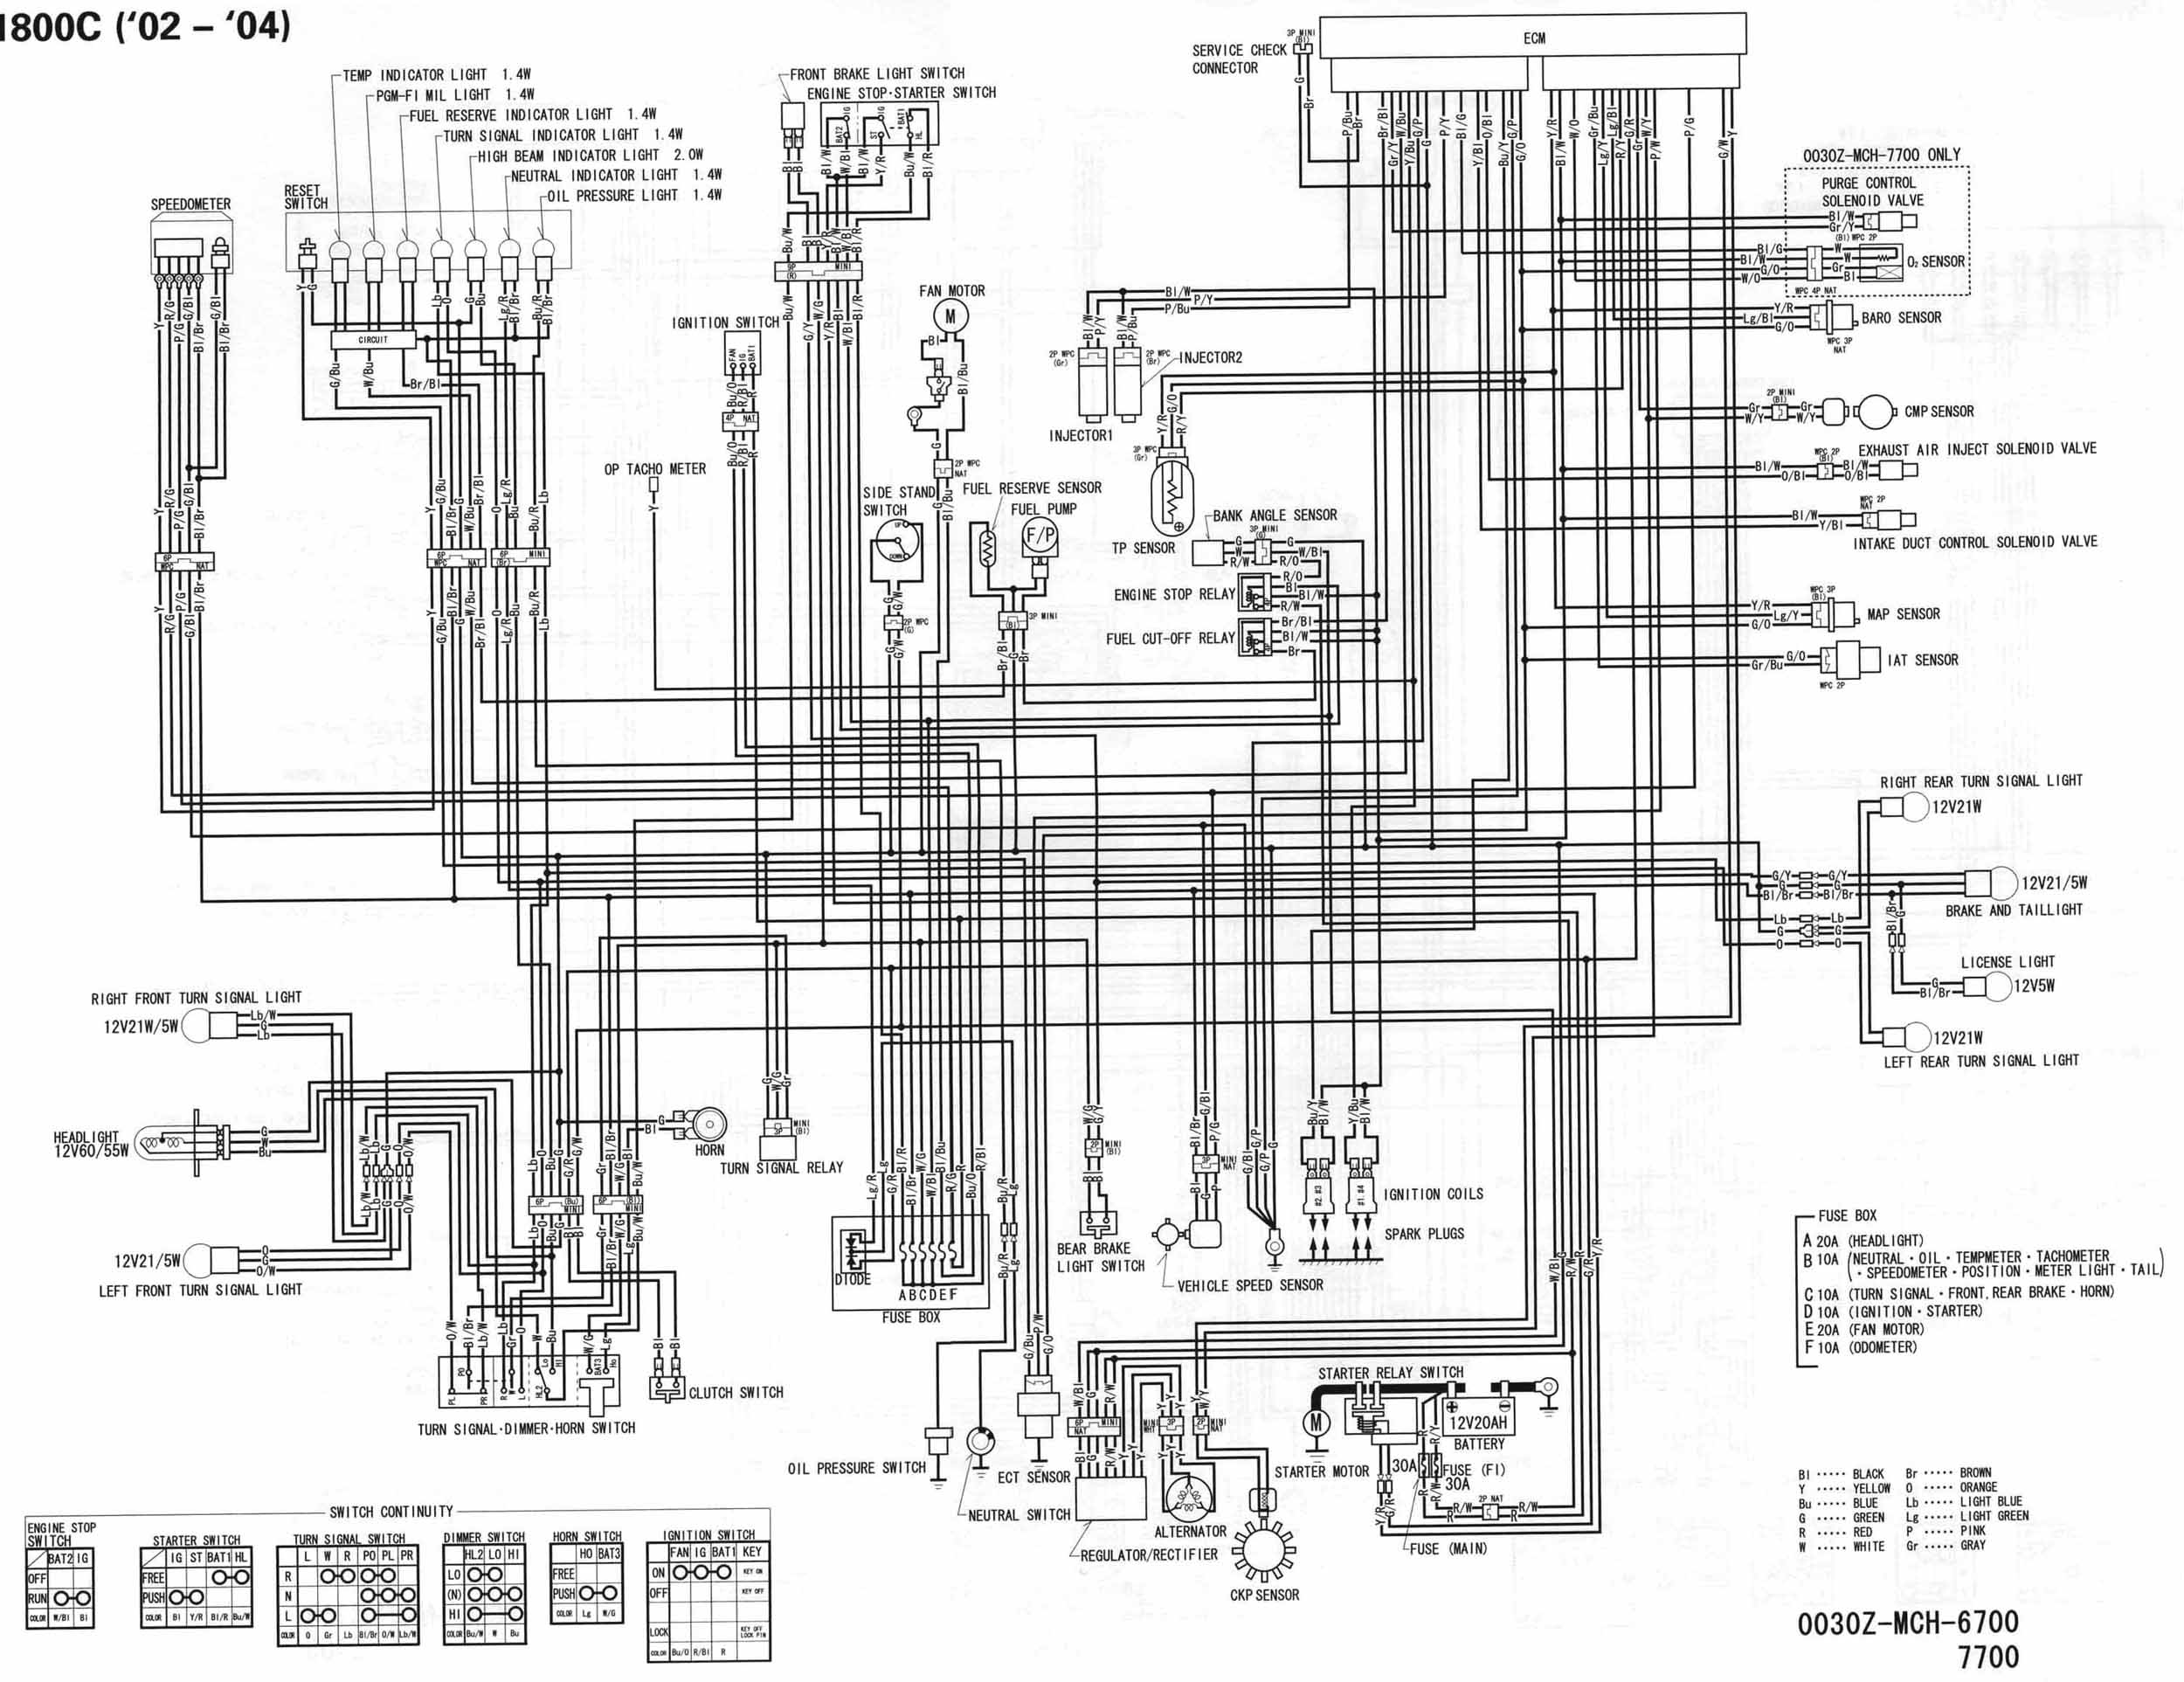 Victory Climate Control Wiring Diagrams - Block And Schematic Diagrams •